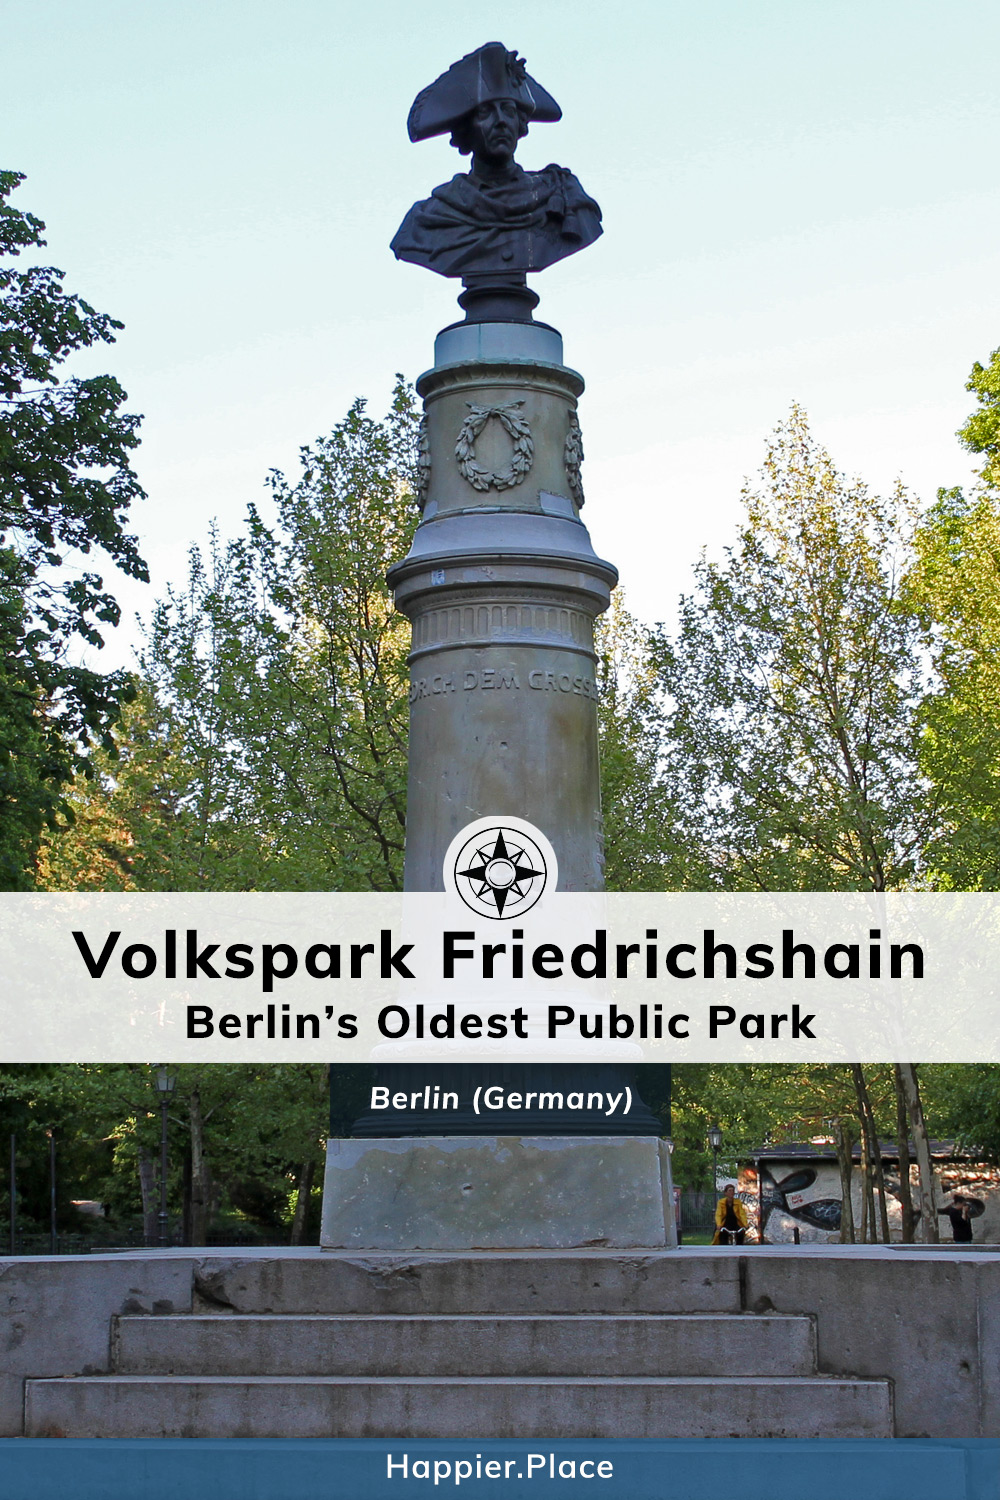 Volkspark Friedrichshain, Berlin, Germany, statue, bust, Frederick the great, Friedrich der Grosse